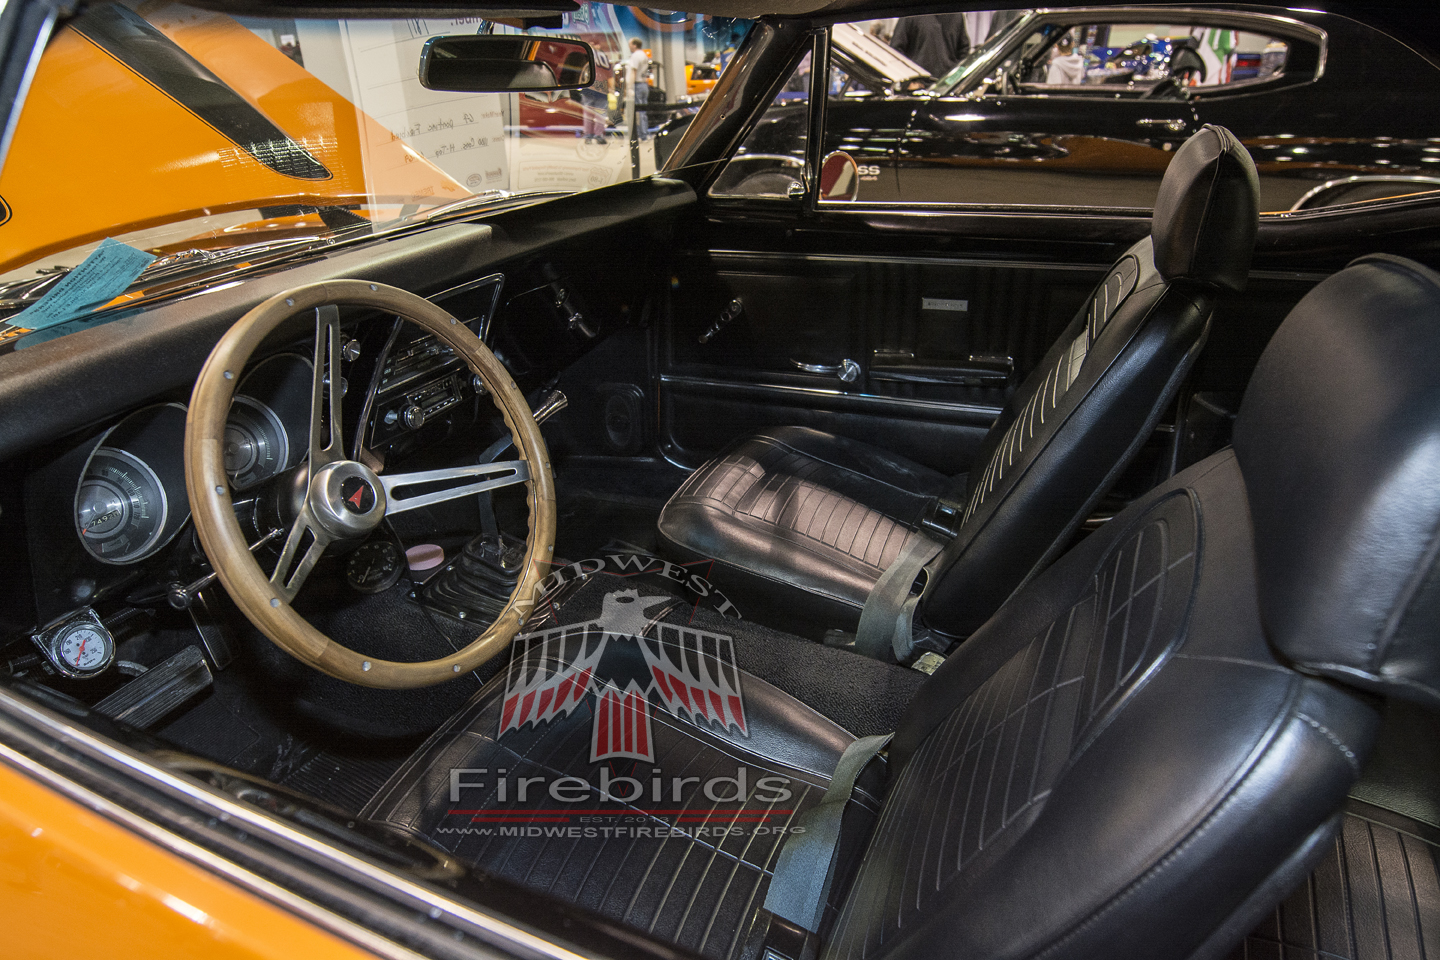 This orange 1967 Pontiac Firebird coupe was on display at the 2014 World of Wheels car show.